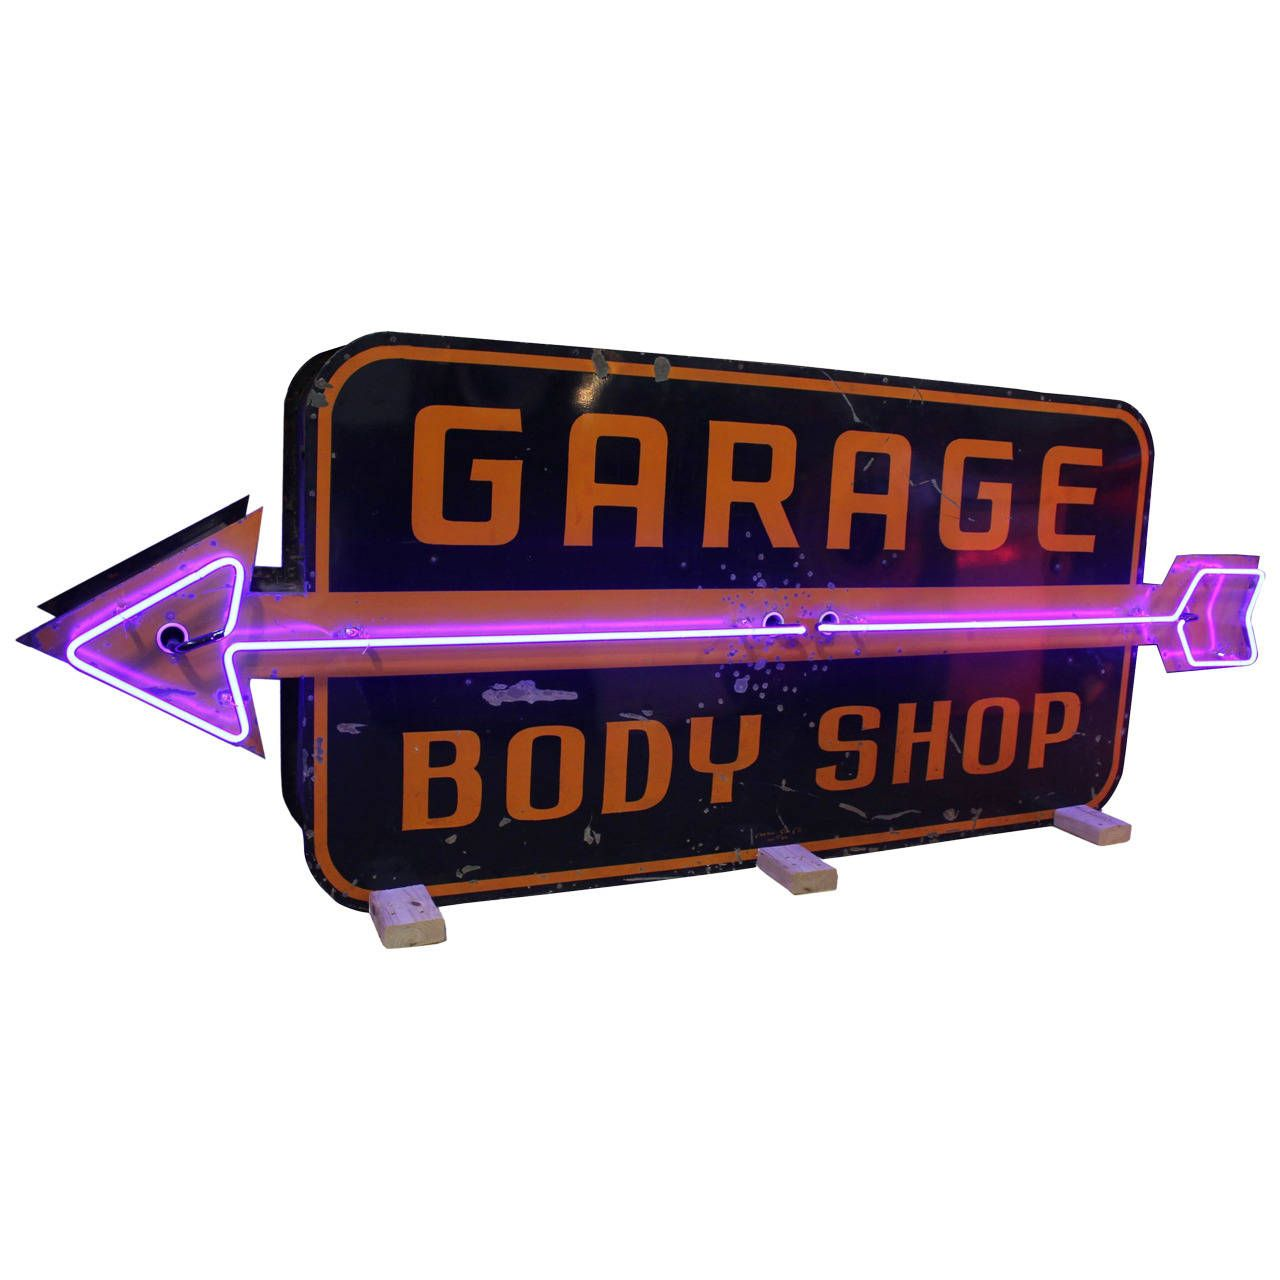 Garage Art Neon Signs 1950s Large Double Sided Garage Body Shop Neon Sign